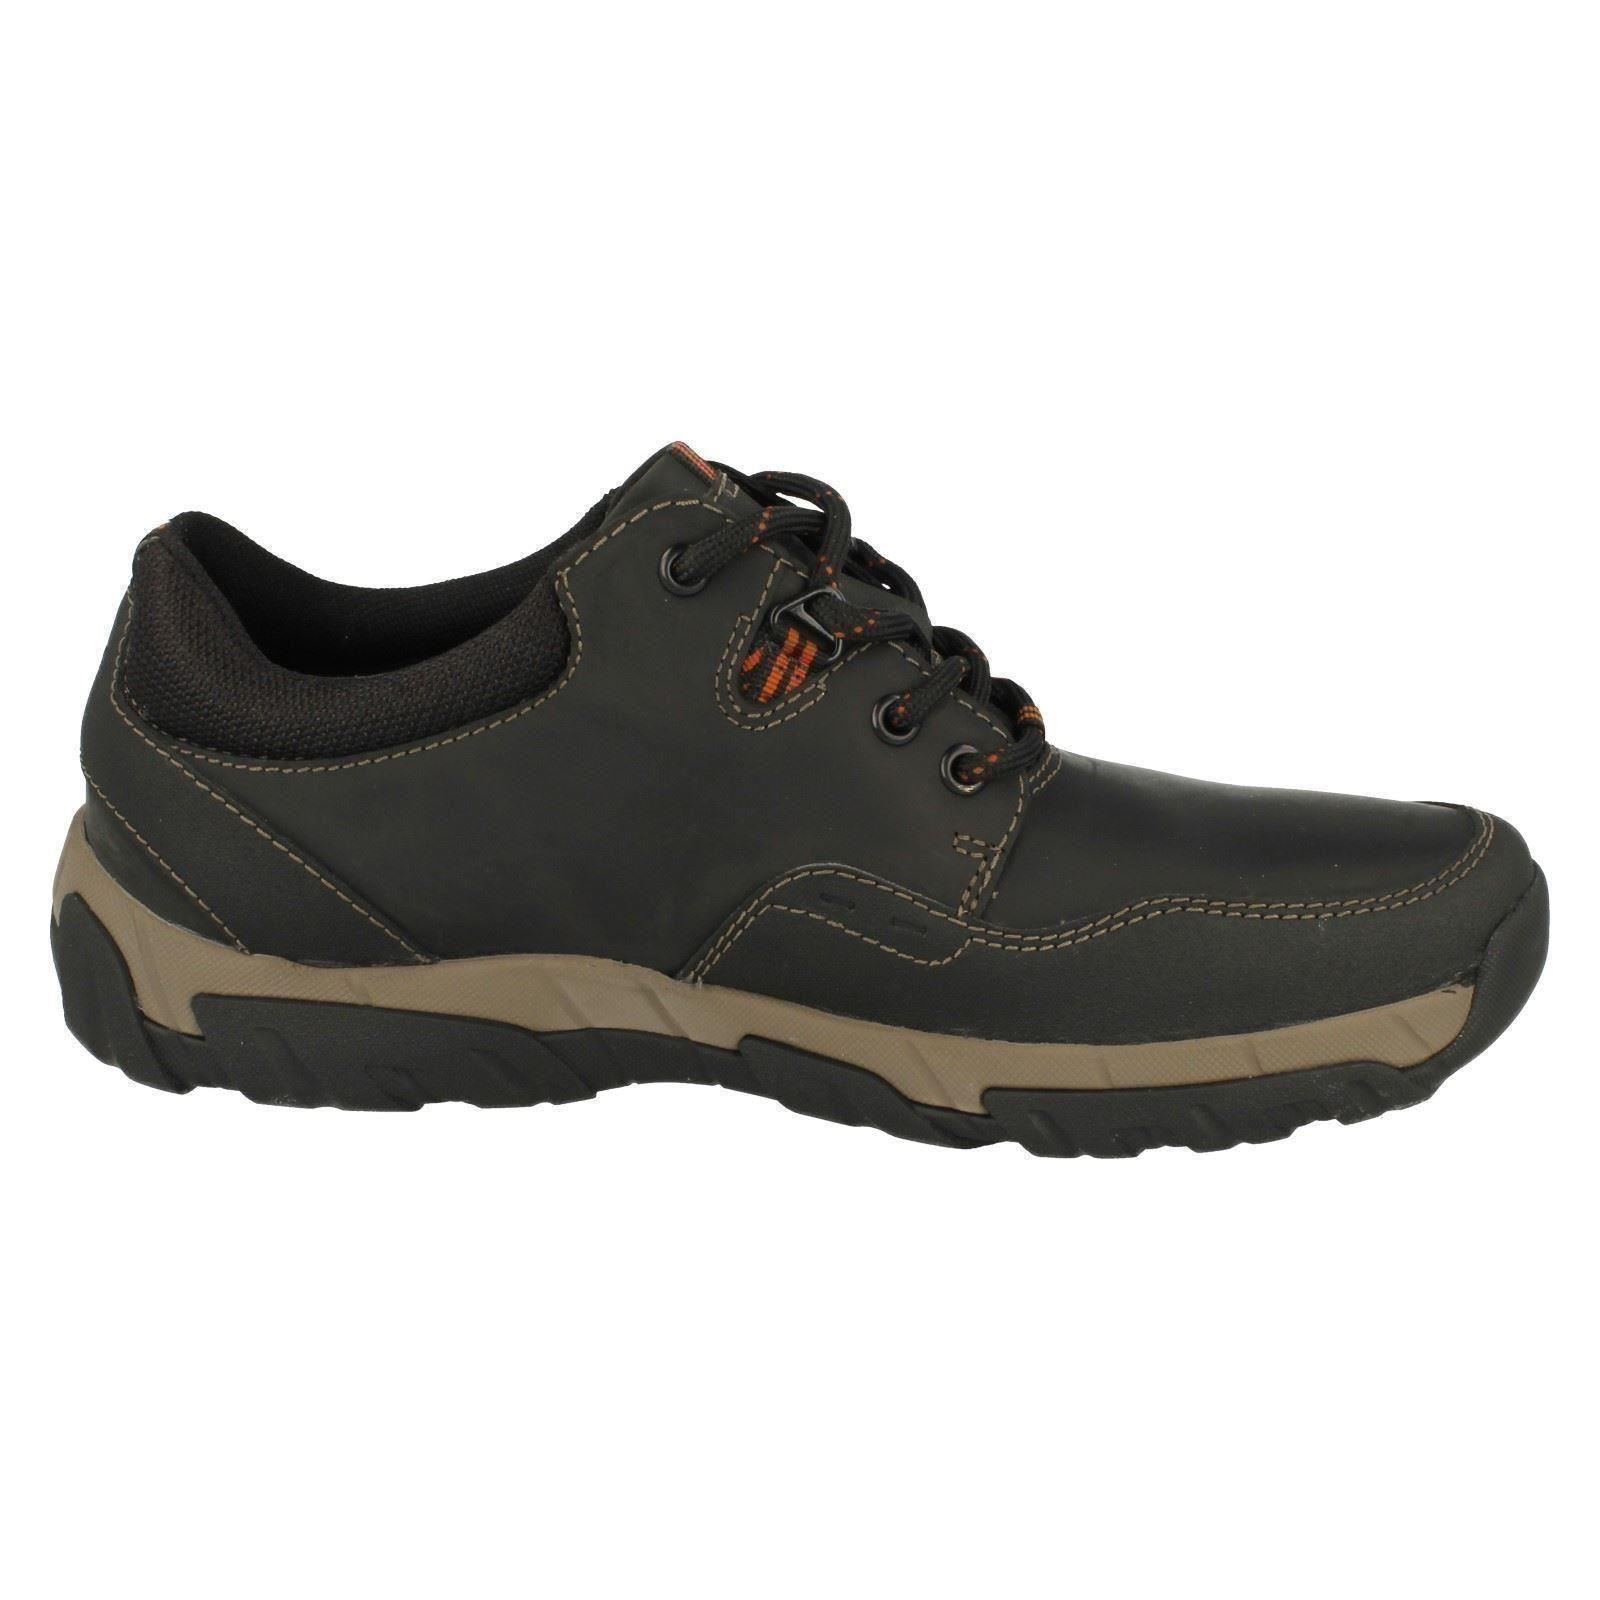 Herren Clarks Waterproof Lace 'Walbeck Up Schuhes 'Walbeck Lace Edge' 92e262